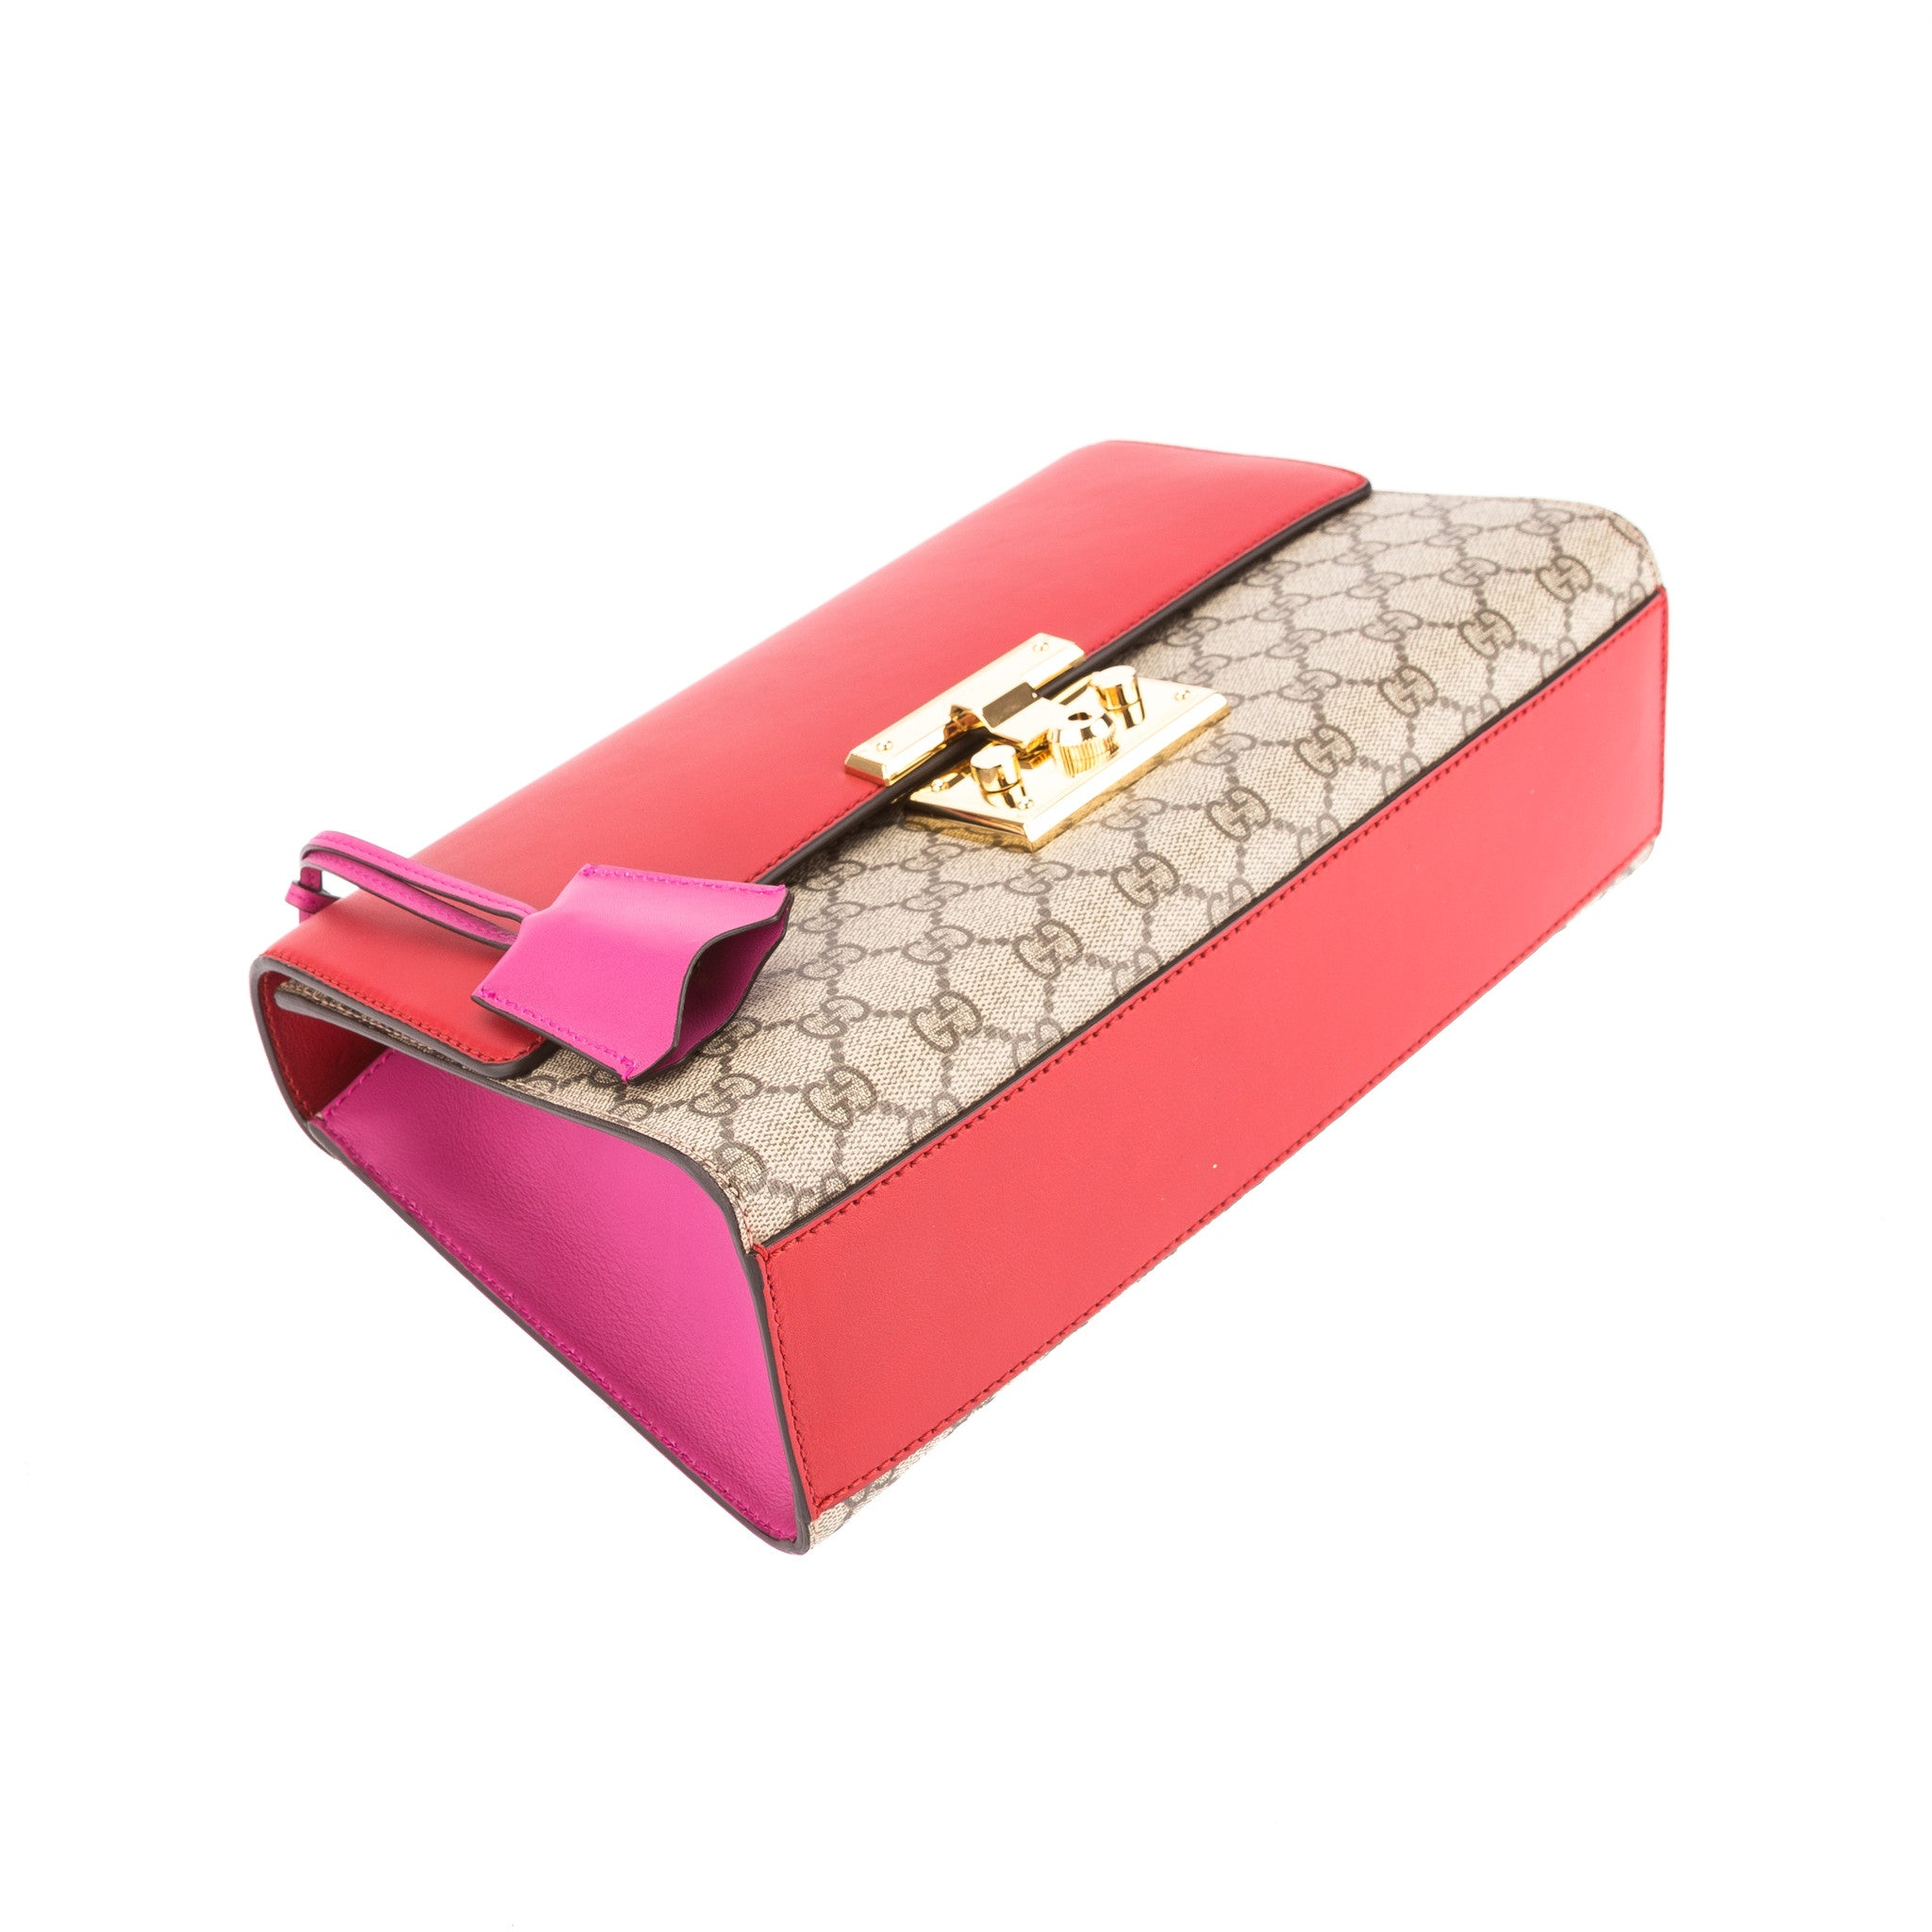 547673c40b11 Gucci Hibiscus Red and Pink Leather GG Supreme Canvas Padlock Shoulder -  3452005 | LuxeDH